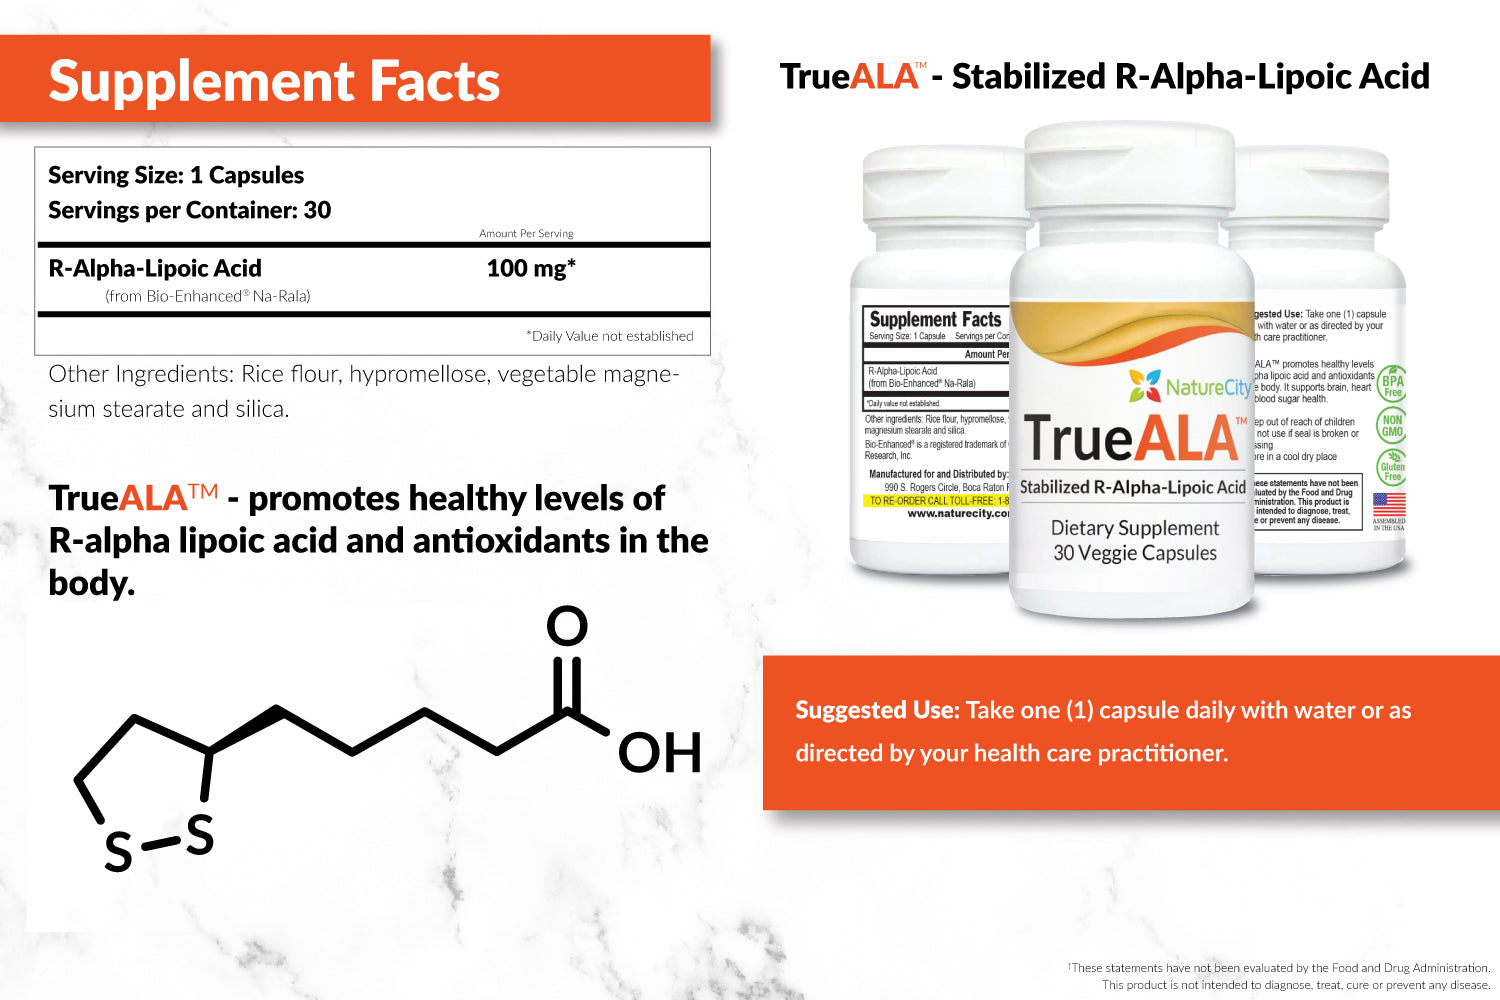 TrueALA Stabilized R-ALA Supplement Facts and Suggested Uses